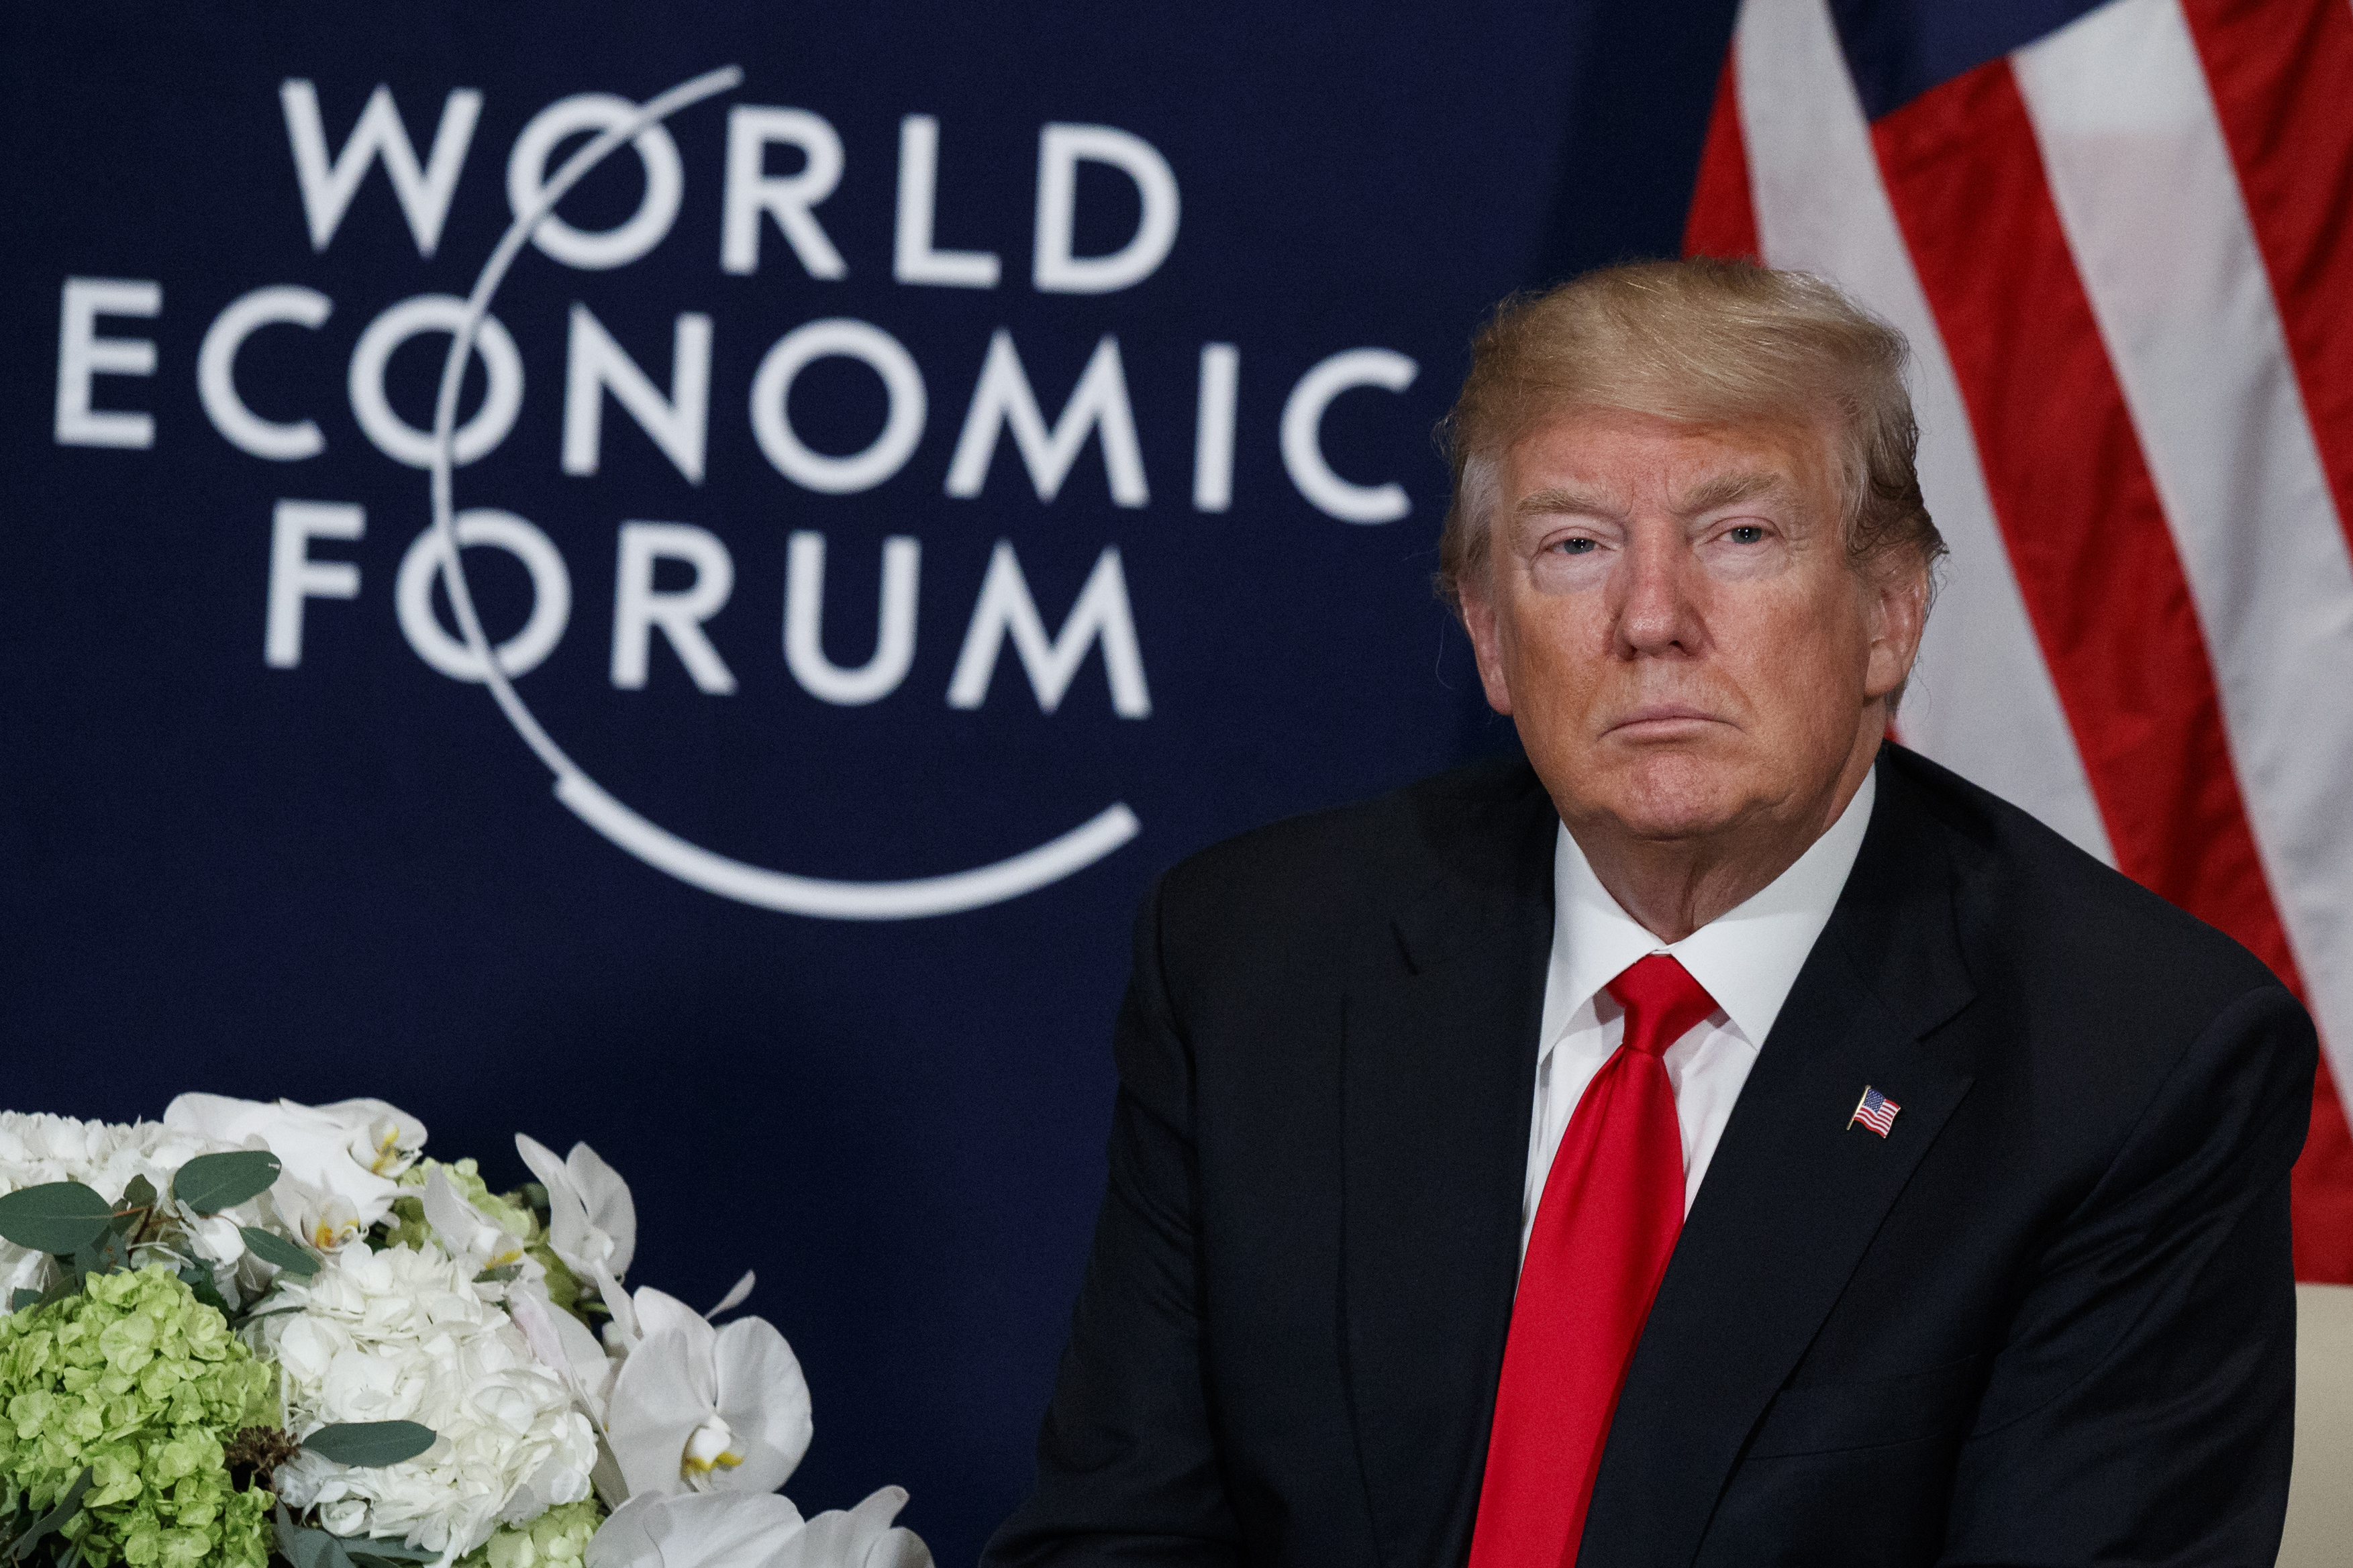 U.S. President Donald Trump listens during a meeting with Rwandan President Paul Kagame at the World Economic Forum, Friday, Jan. 26, 2018, in Davos, Switzerland. (AP Photo/Evan Vucci)